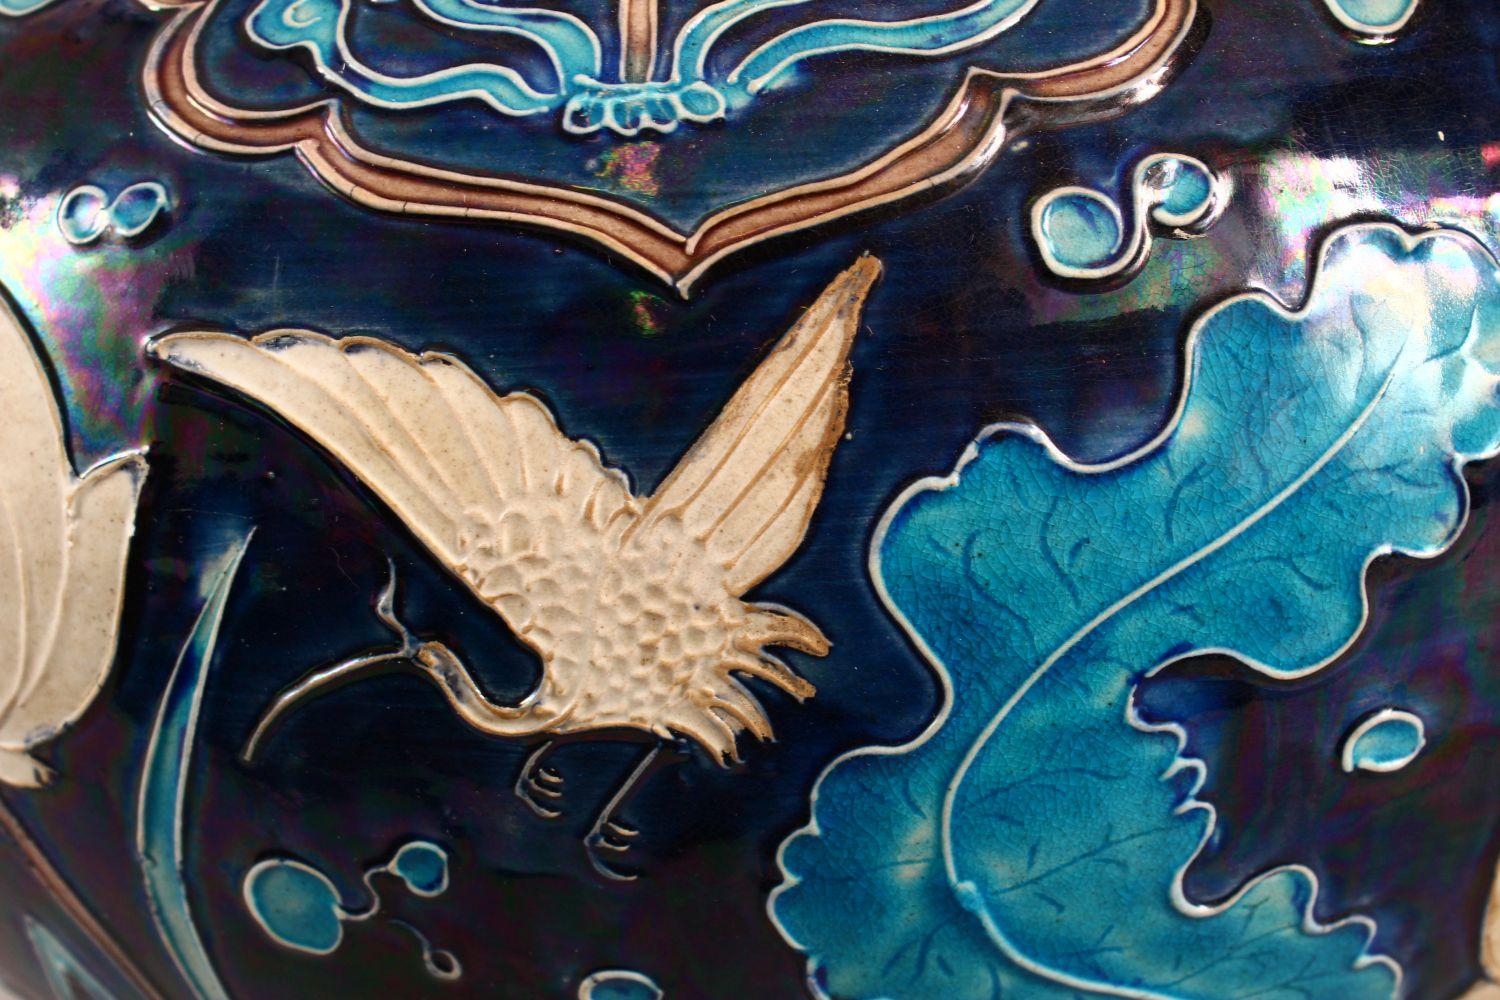 A LARGE CHINESE FAHUHA VASE, decorated with relief linework depicting lotus, lily pads and egrets - Image 5 of 7